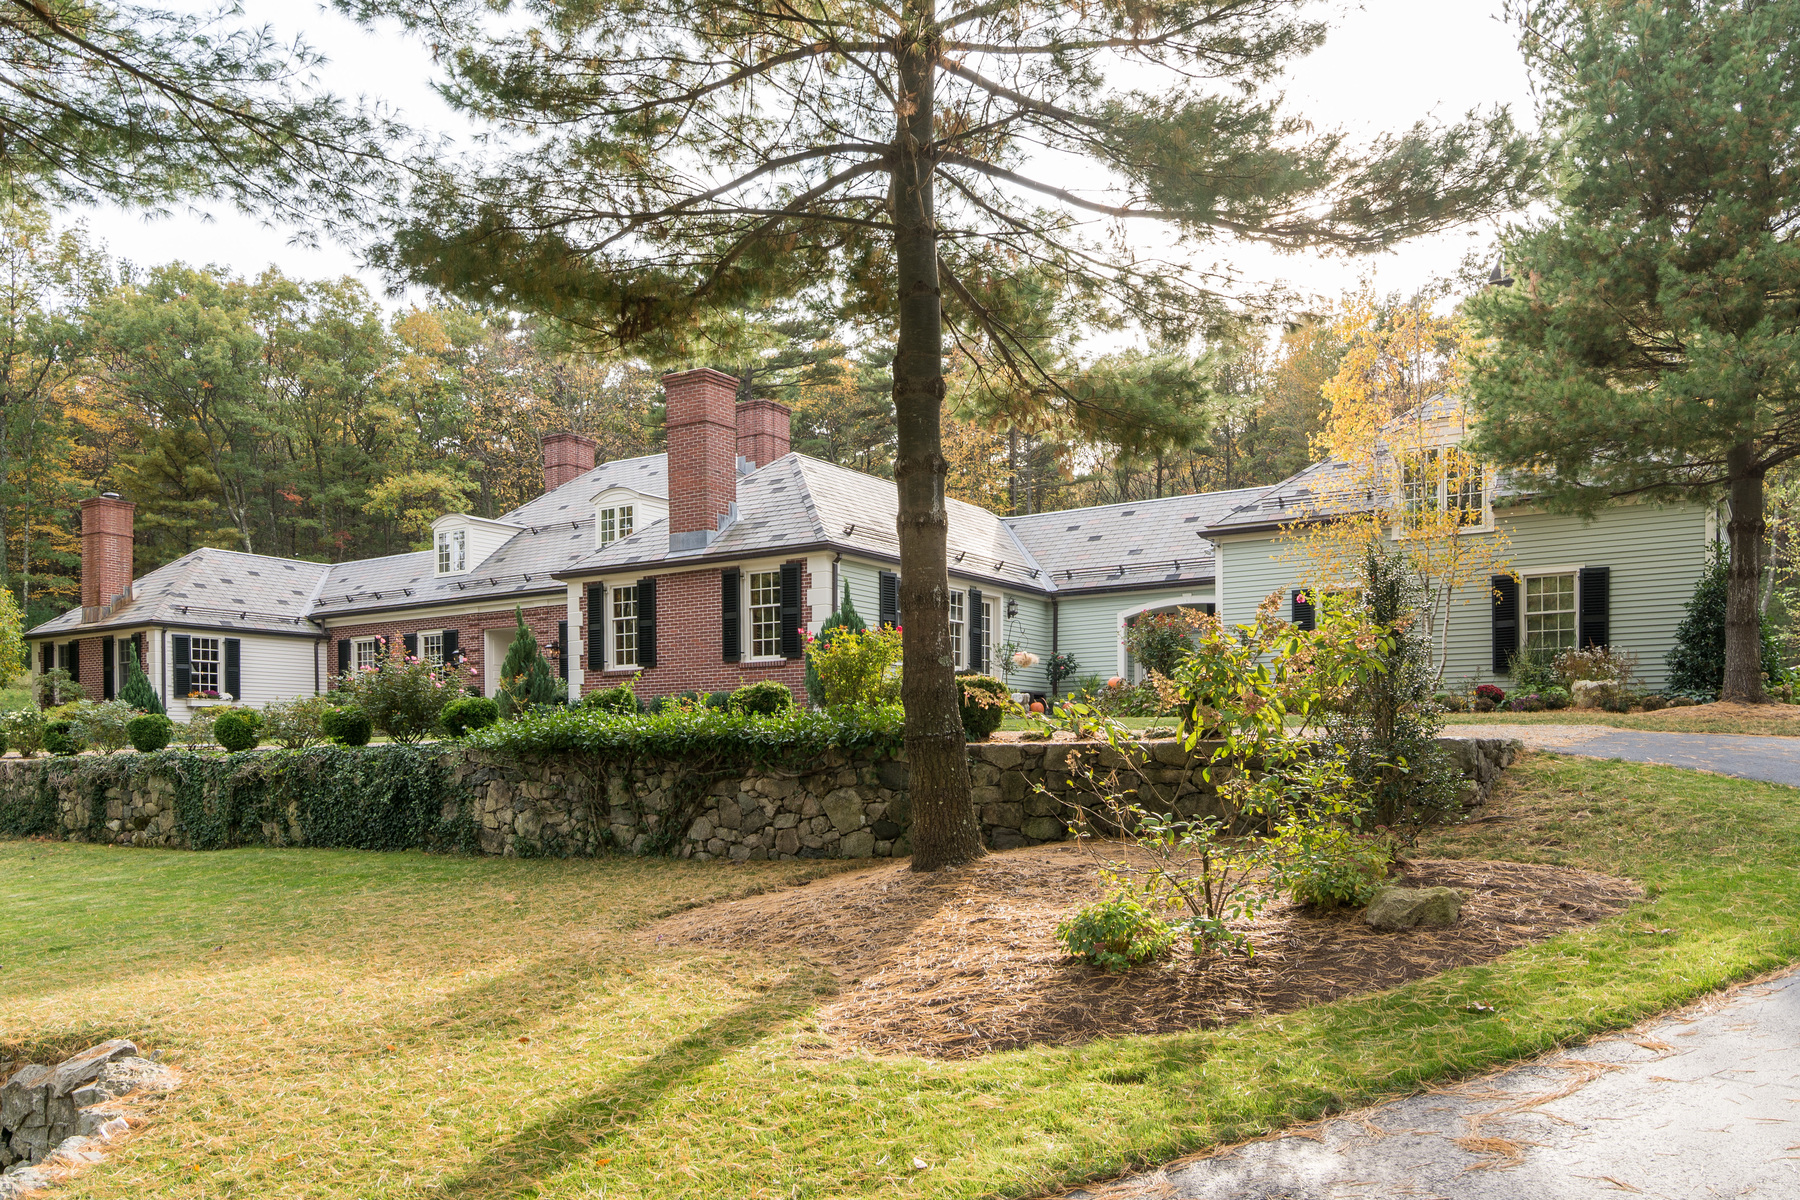 Single Family Home for Sale at Exquisite Home On Rare 3 Acres 150 Pond Road Wellesley, Massachusetts 02482 United States